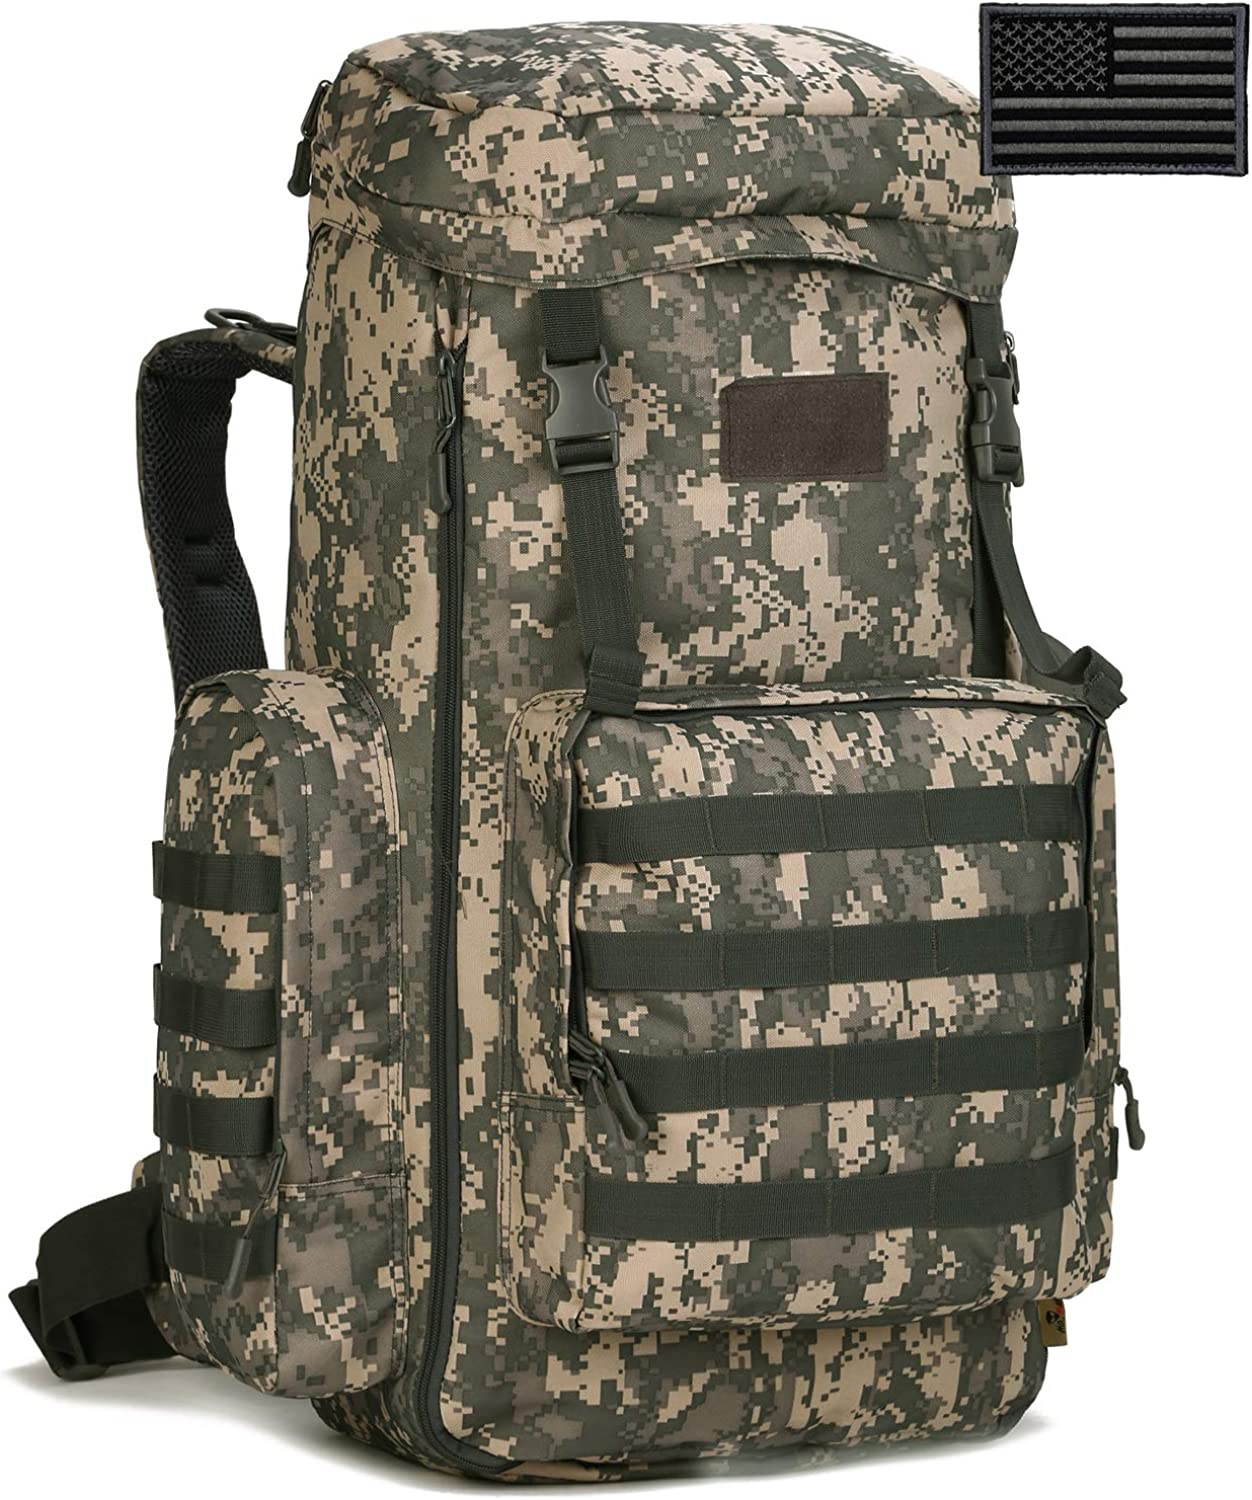 Protector Plus Tactical Hiking Daypack 70-85L Military MOLLE Outdoor Rucksack (Rain Cover & Patch Included)